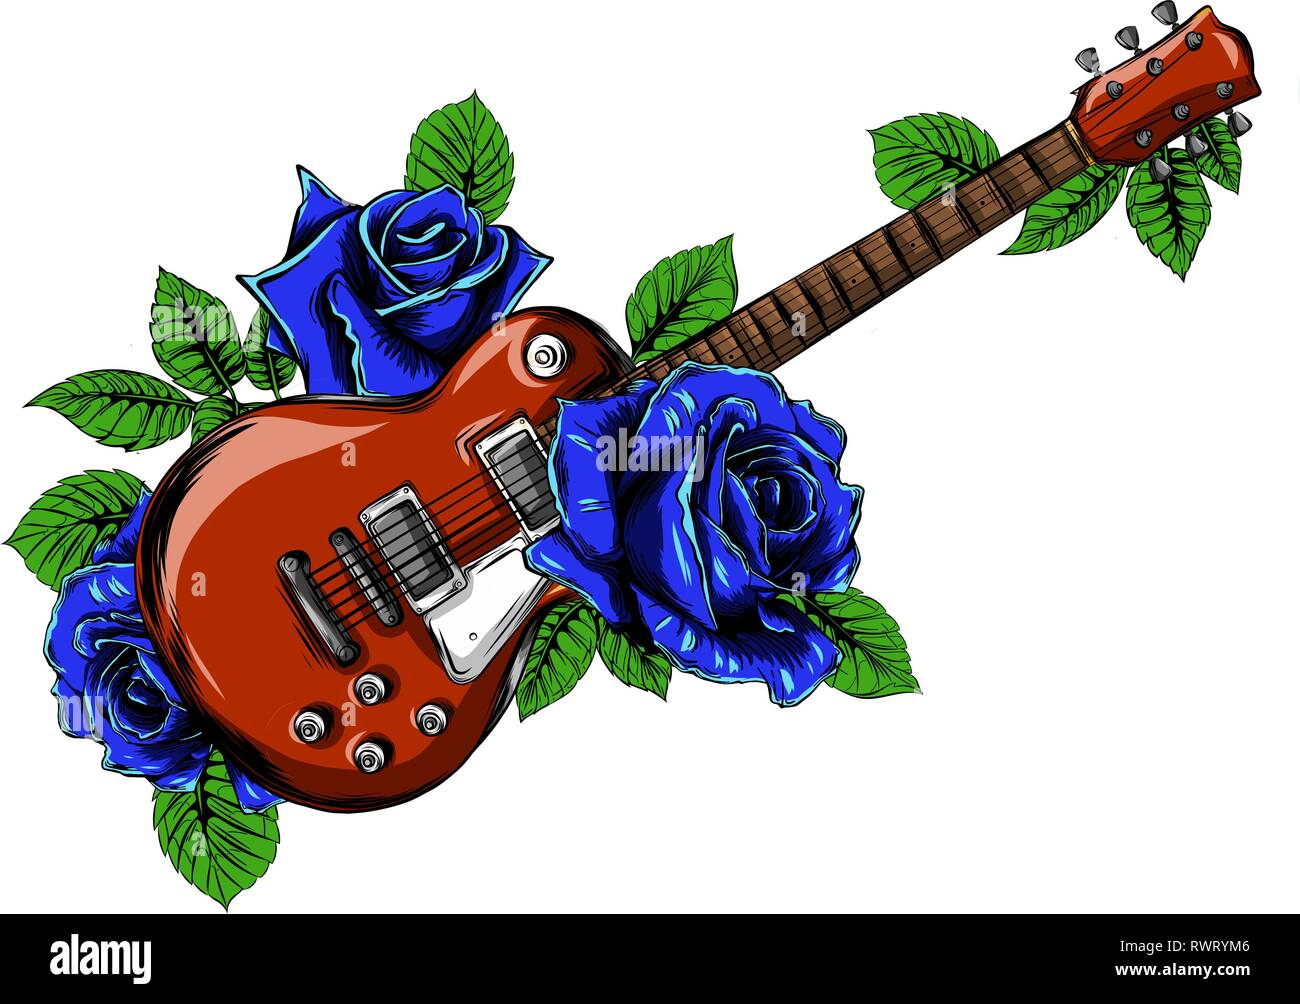 electric guitar on fire with blue flames Stock Vector